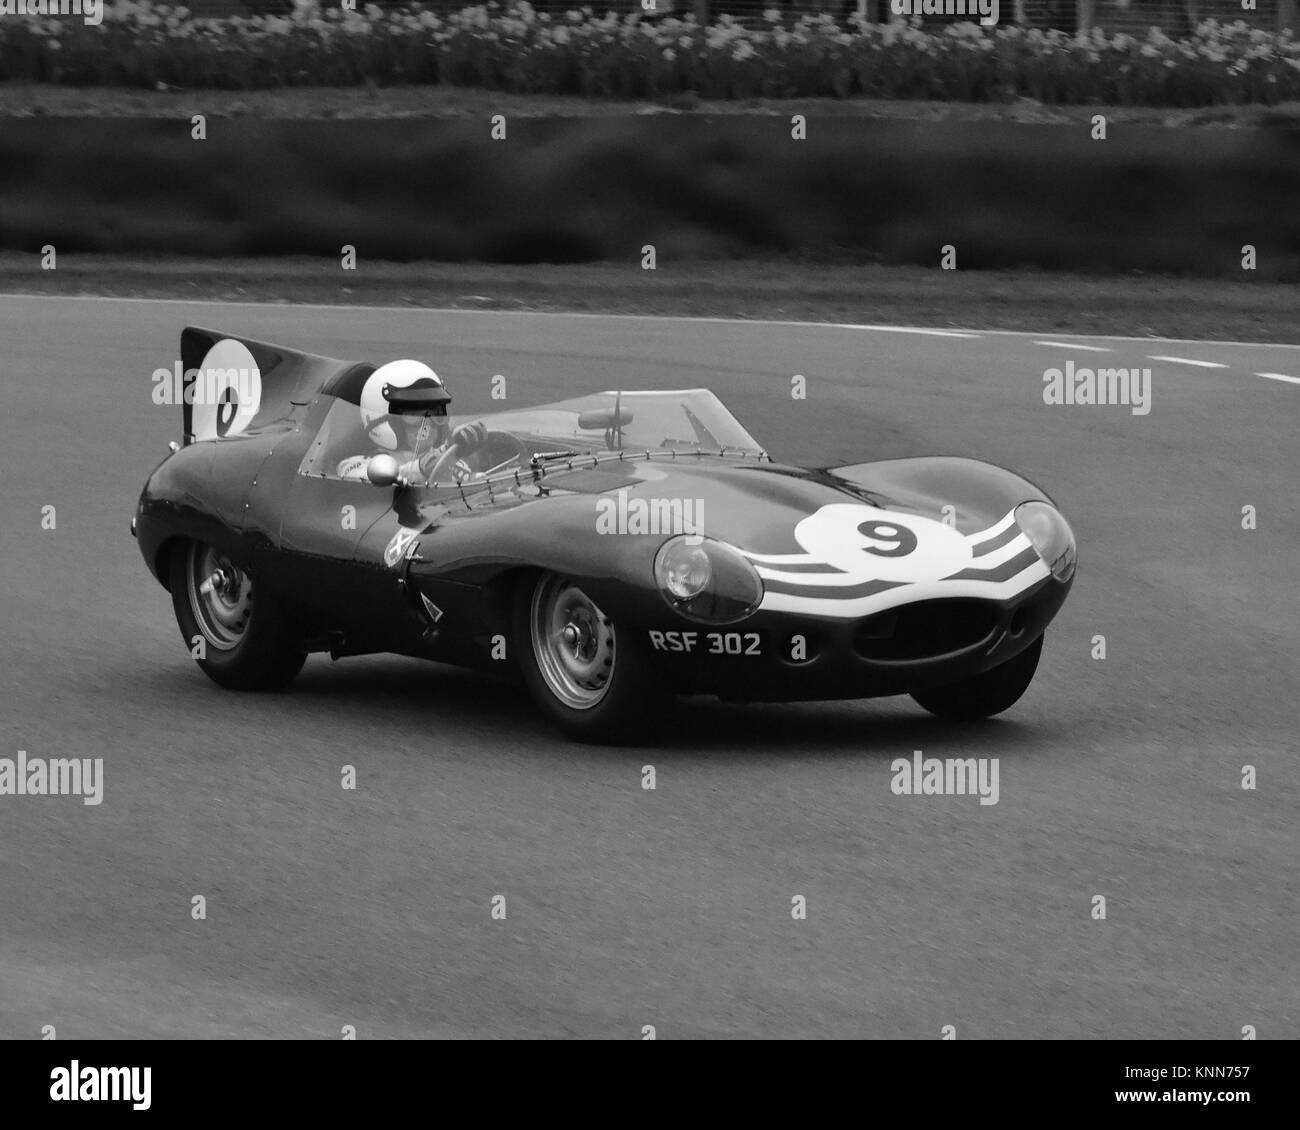 Christian Glasel, Jaguar D Type, Long Nose, RSF 302, Salvadori Cup, Sports  Prototypes, Goodwood 73rd MM March 2015, 73rd, 73rd Members Meeting, Action